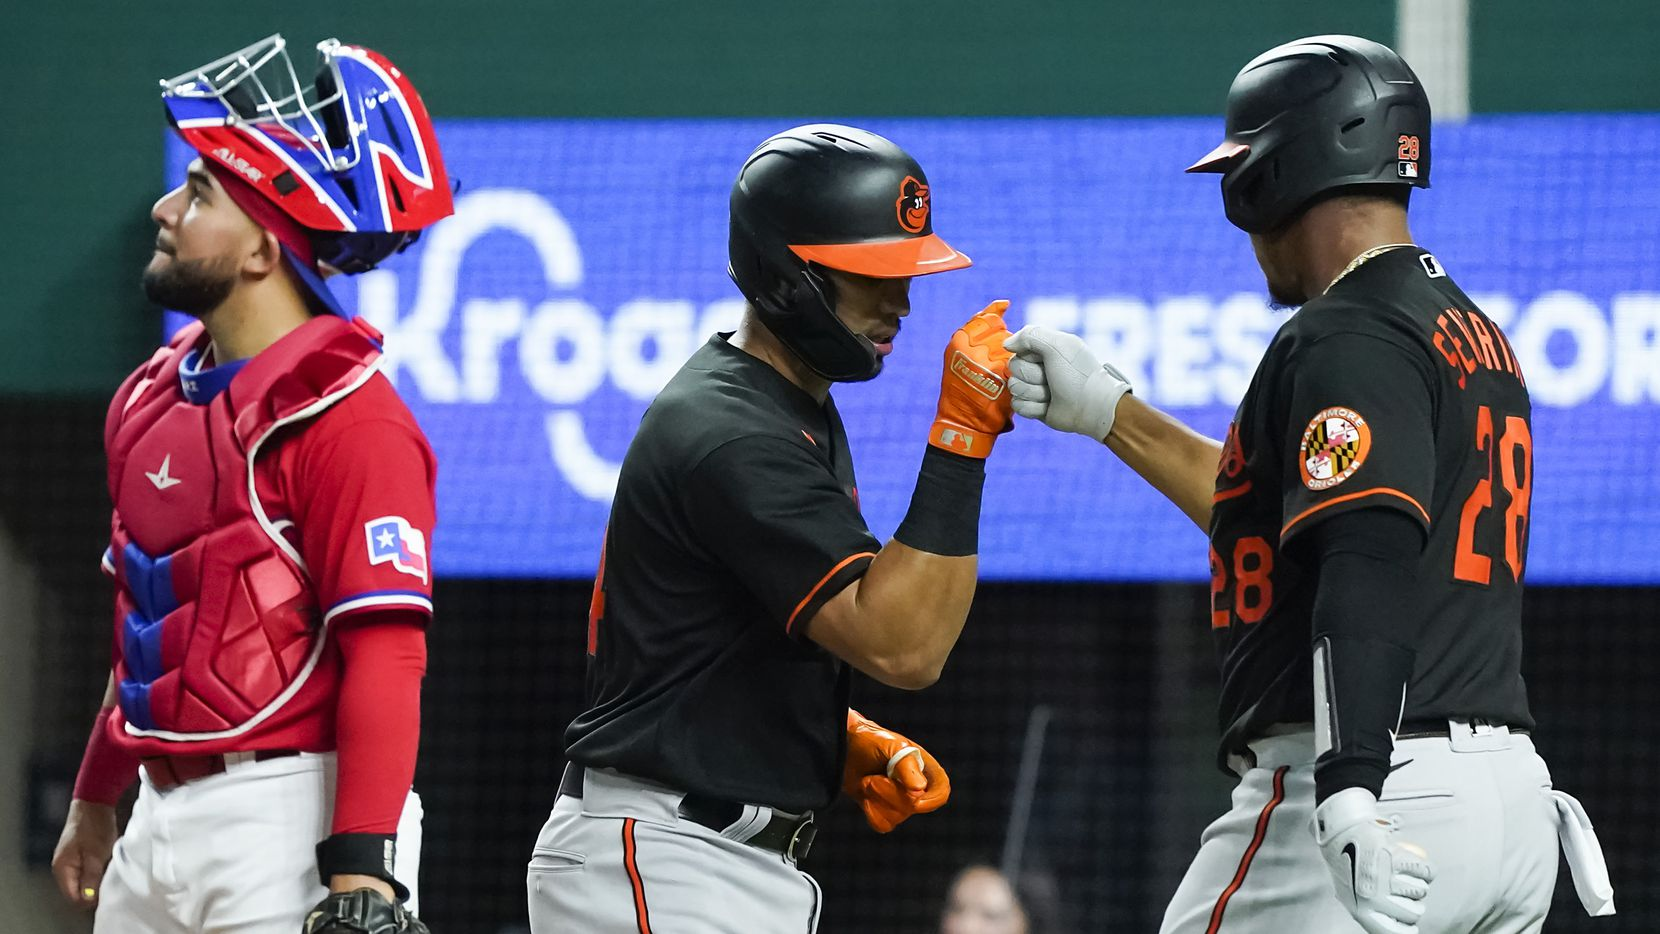 Baltimore Orioles second baseman Rio Ruiz celebrates with catcher Pedro Severino after hitting a solo home run during the fourth inning as Texas Rangers catcher Jose Trevino looks away at Globe Life Field on Friday, April 16, 2021.